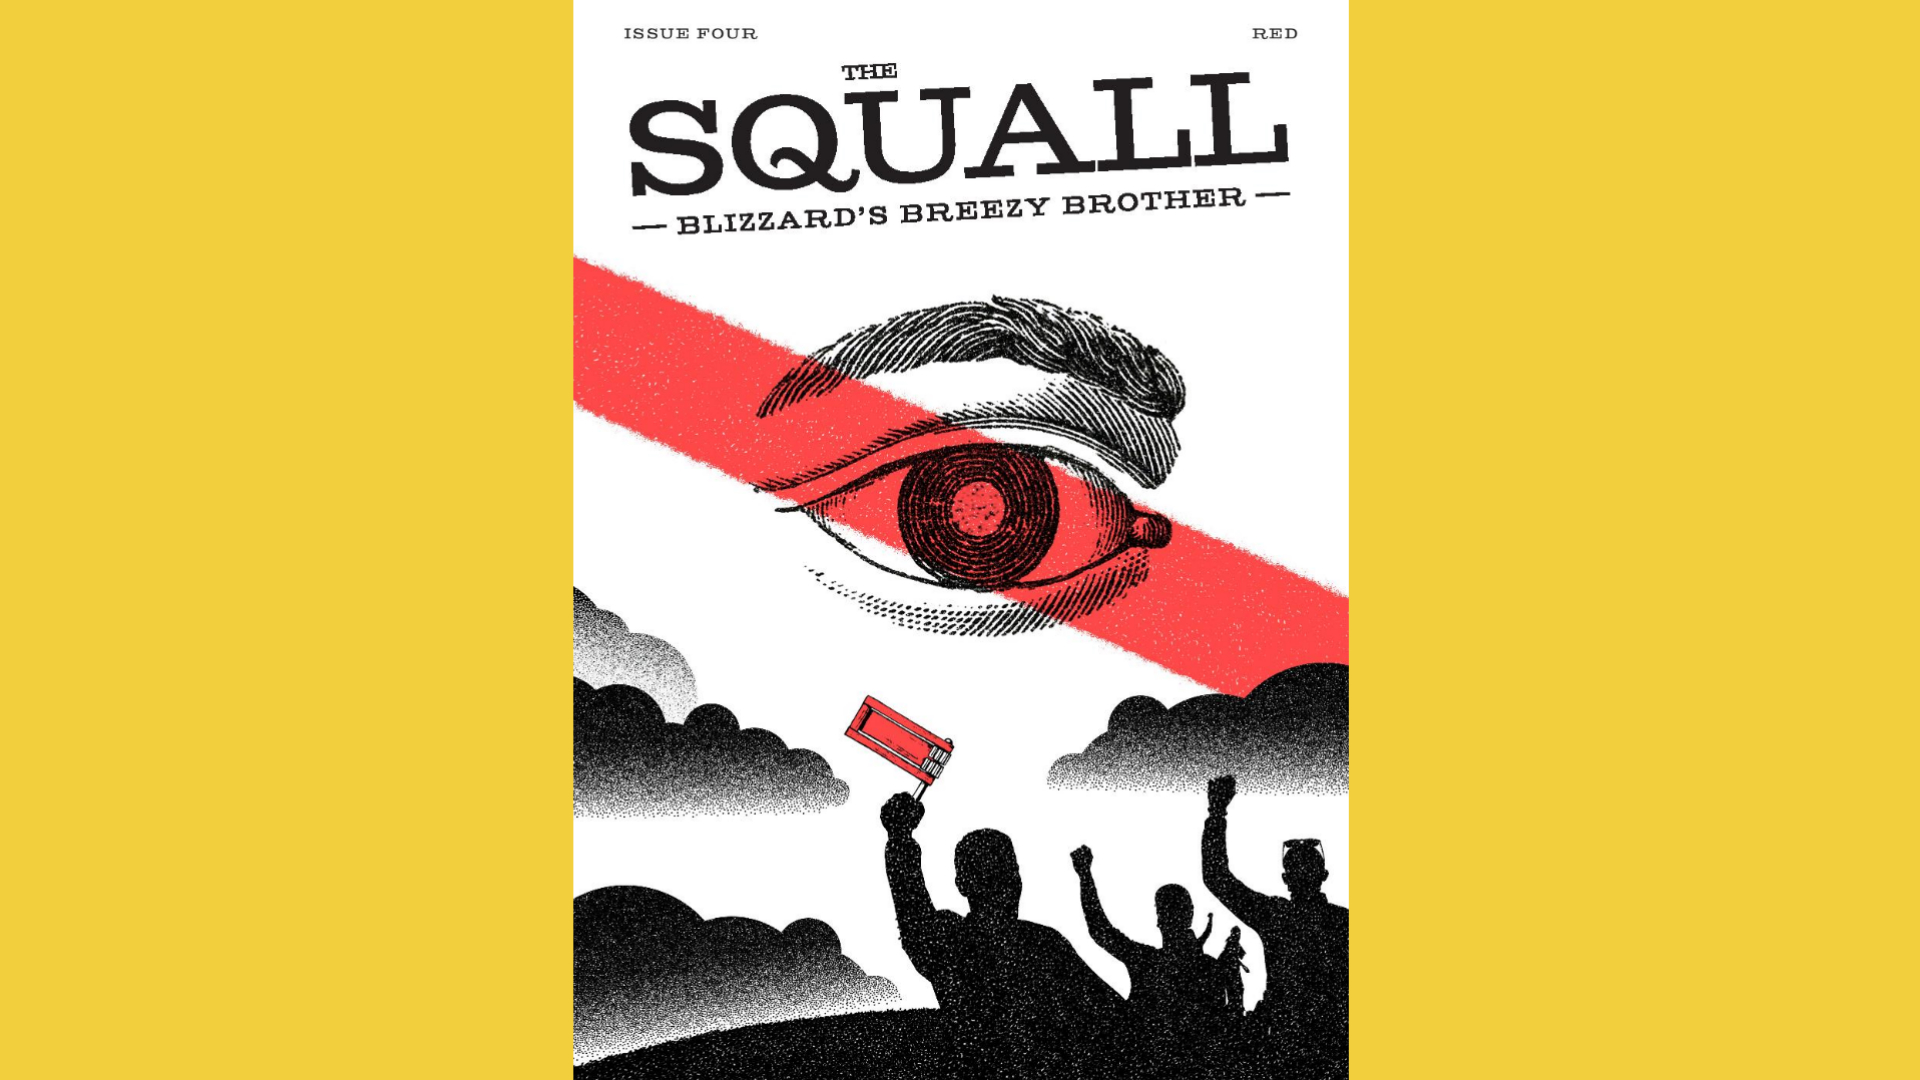 The Squall, Issue Four – Red